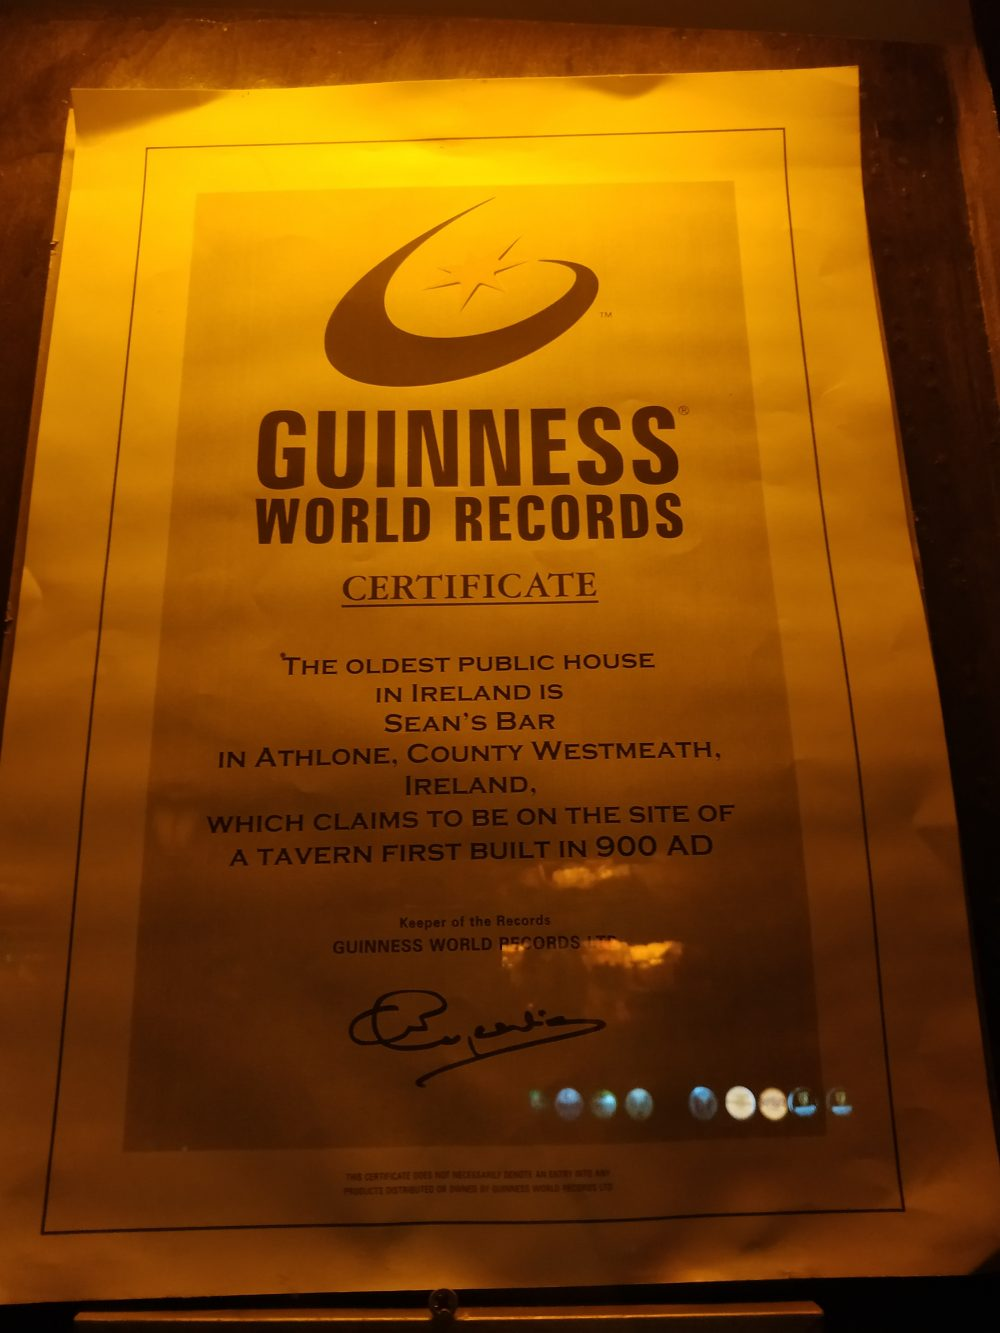 Sean's Bar - il certificato firmato Guinness World Records